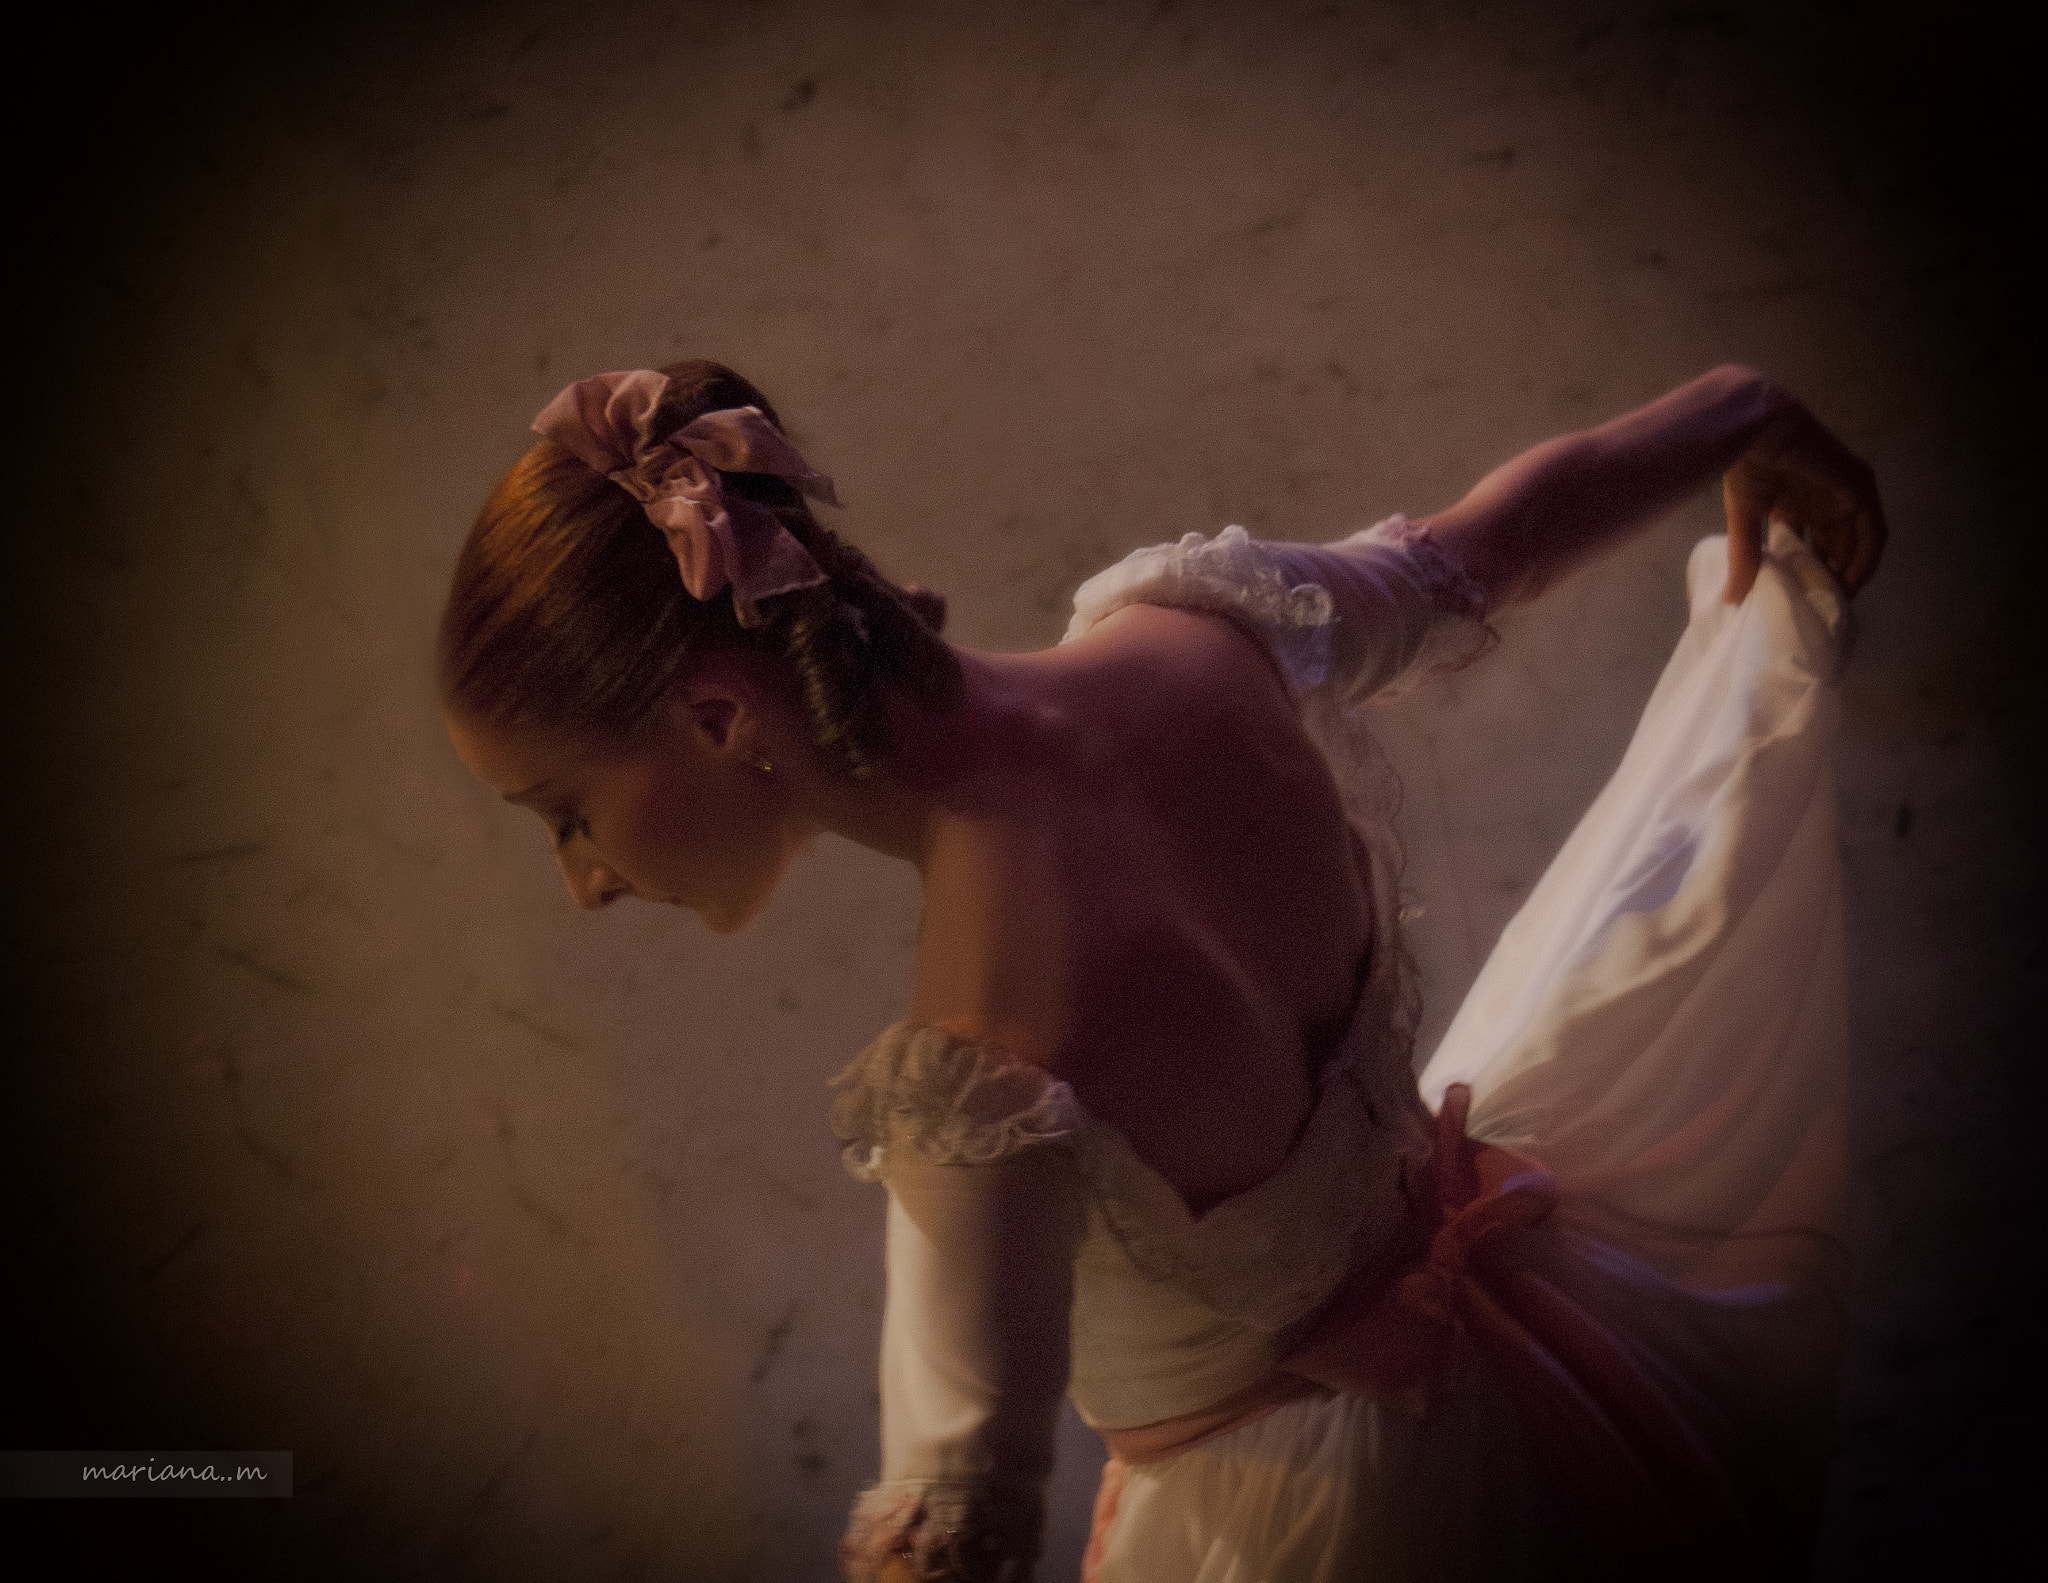 Photograph Dance Painting  by Mariana MA on 500px